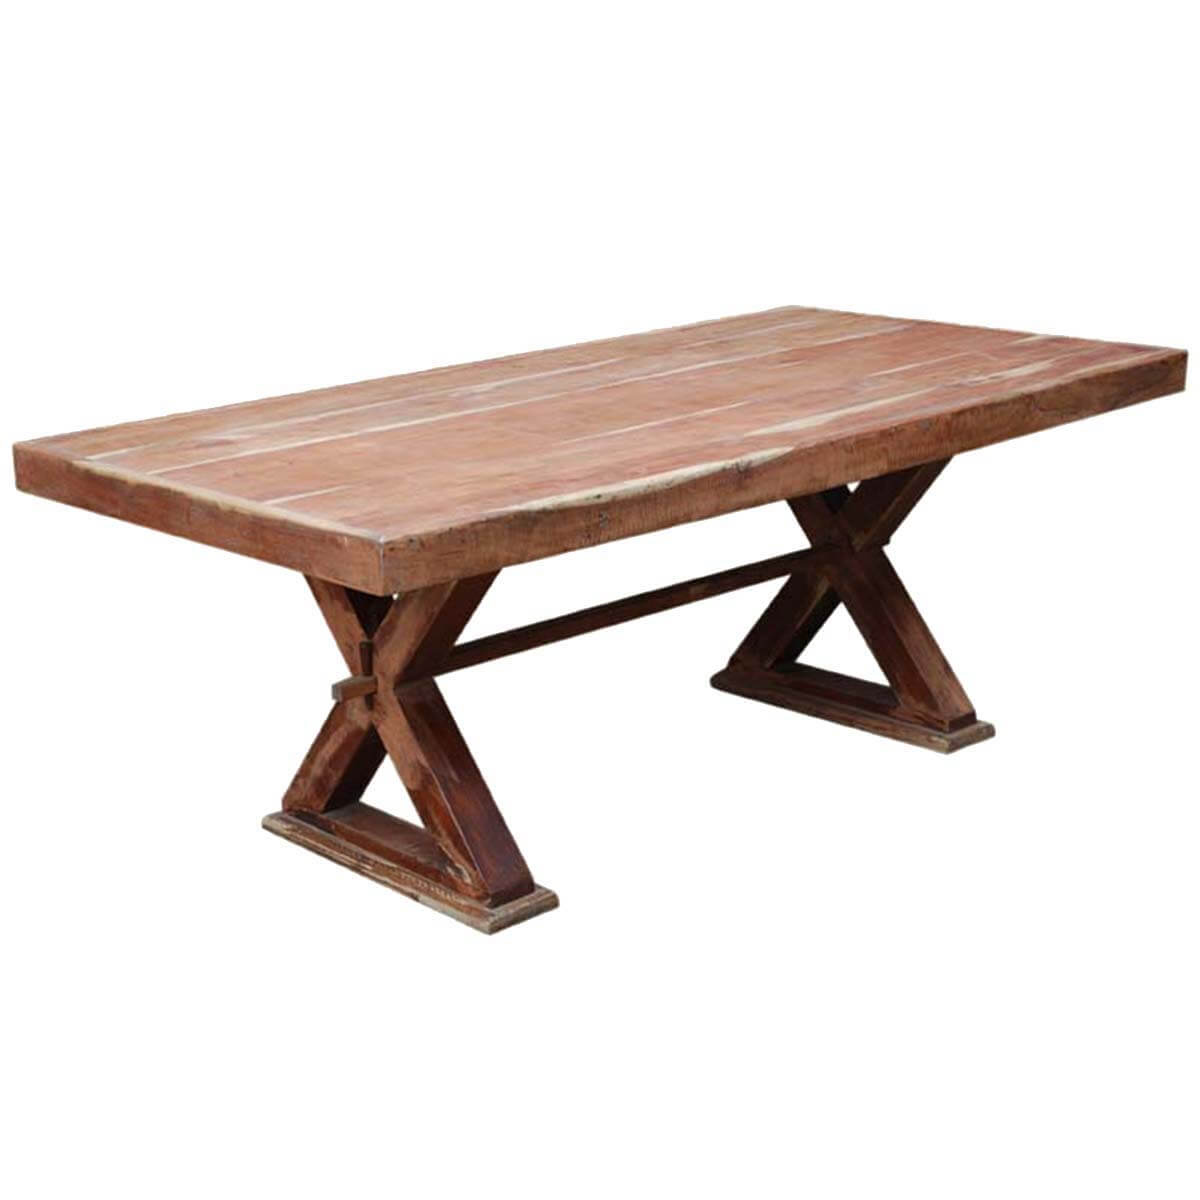 Frisco Modern Solid Wood Rectangular Rustic Dining Room Table: McKay Rustic Solid Wood Double Pedestal Rectangular Dining